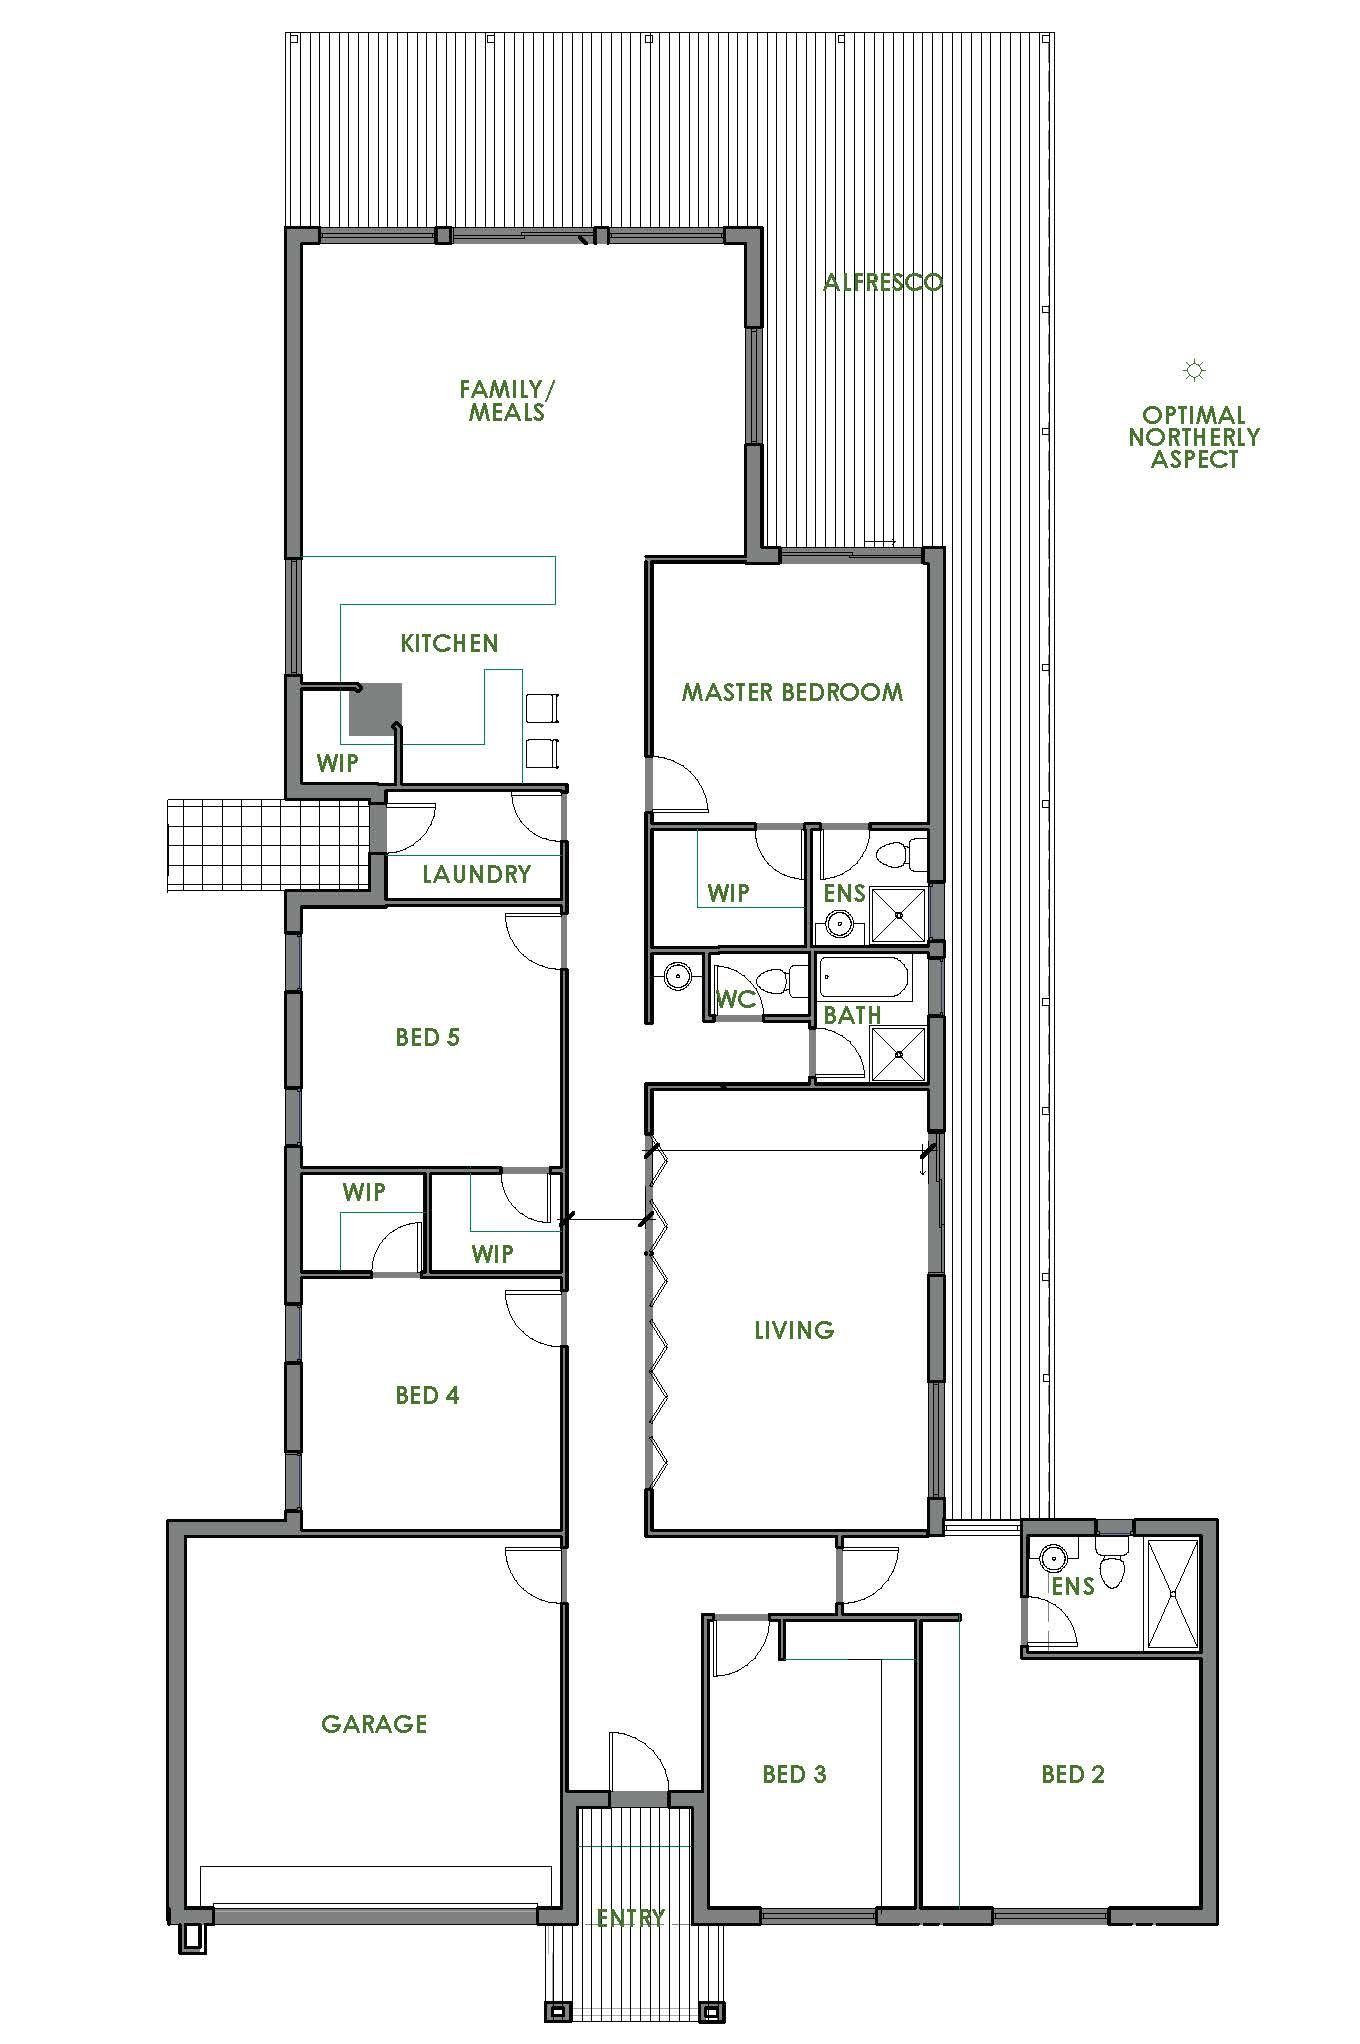 Kimberley New Home Design Green Homes Australia House Plans Energy Efficient Homes Small House Plans